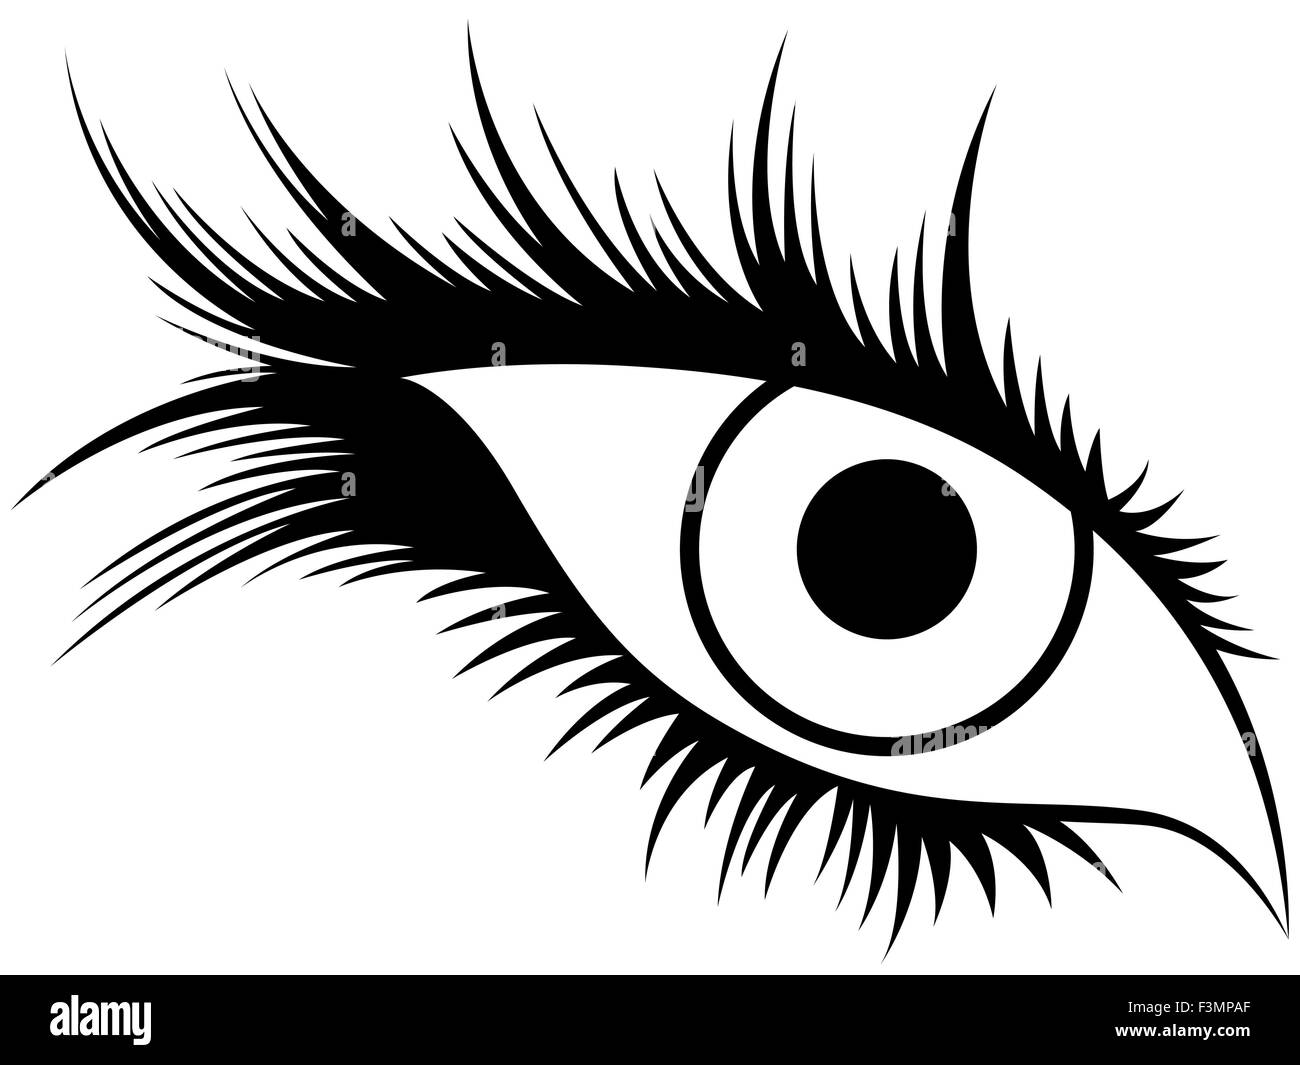 Abstract Black Silhouette Of Human Eye With Long Lashes